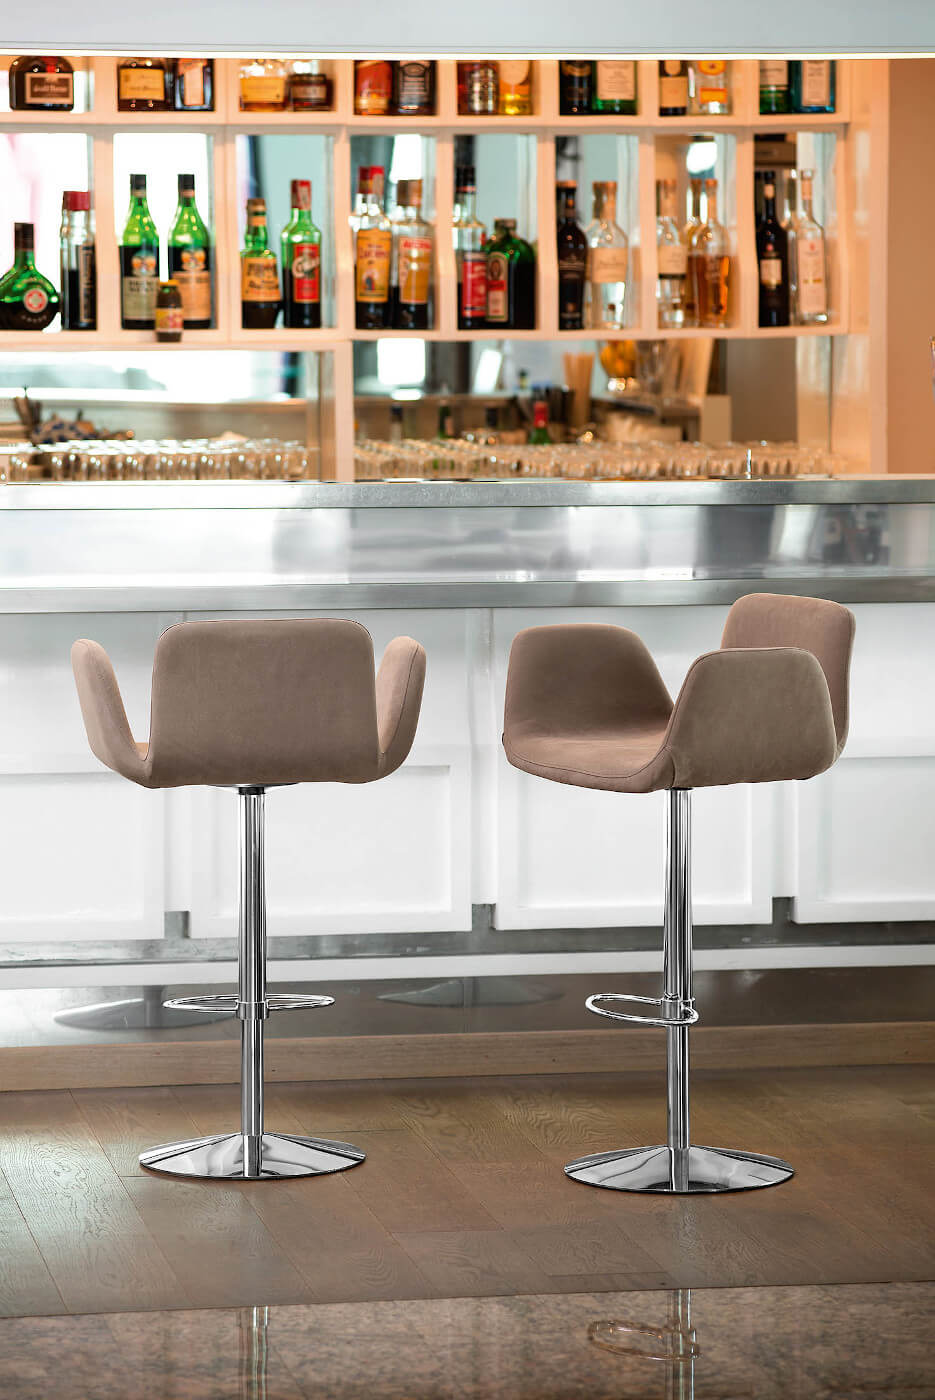 Sgabello da bar Light con seduta in ecopelle beige e base girevole in metallo